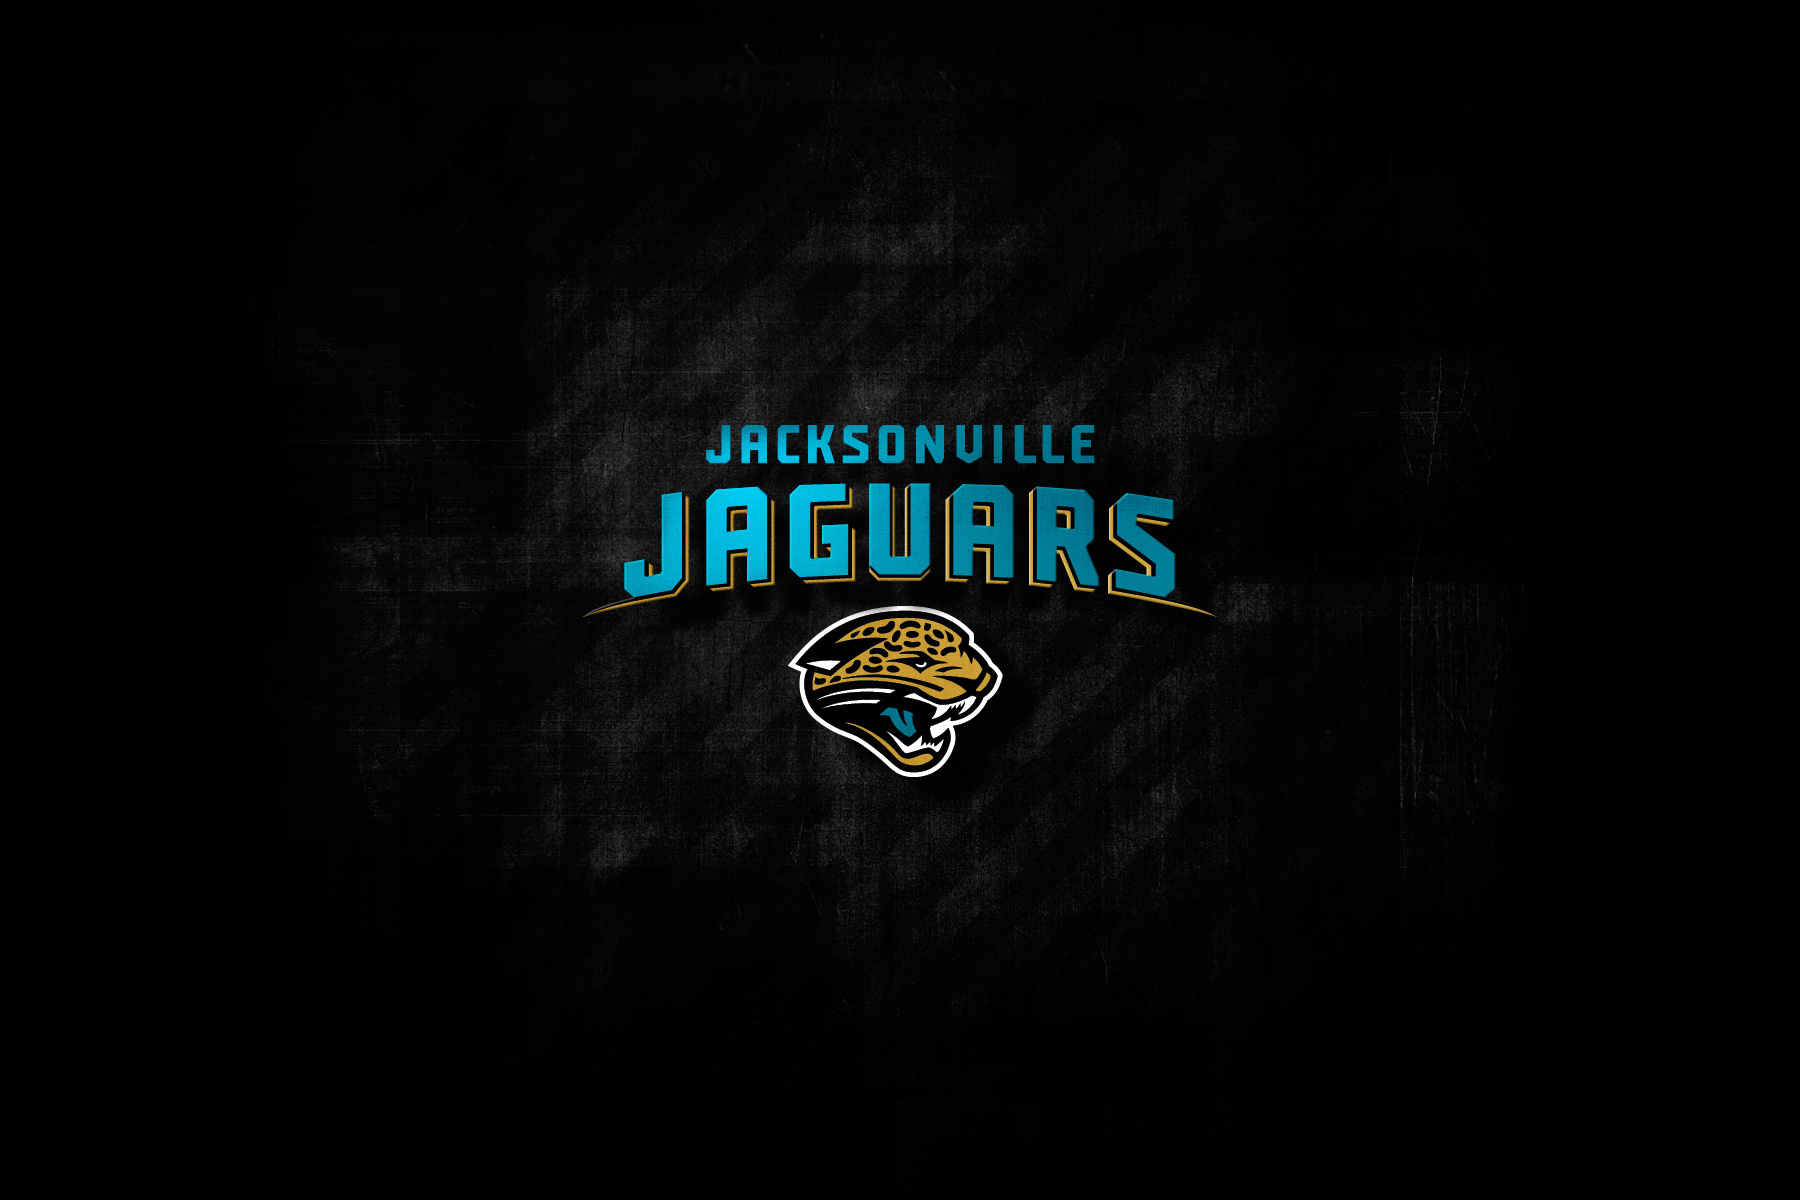 Jacksonville Jaguar Wallpapers HD - WallpaperSafari